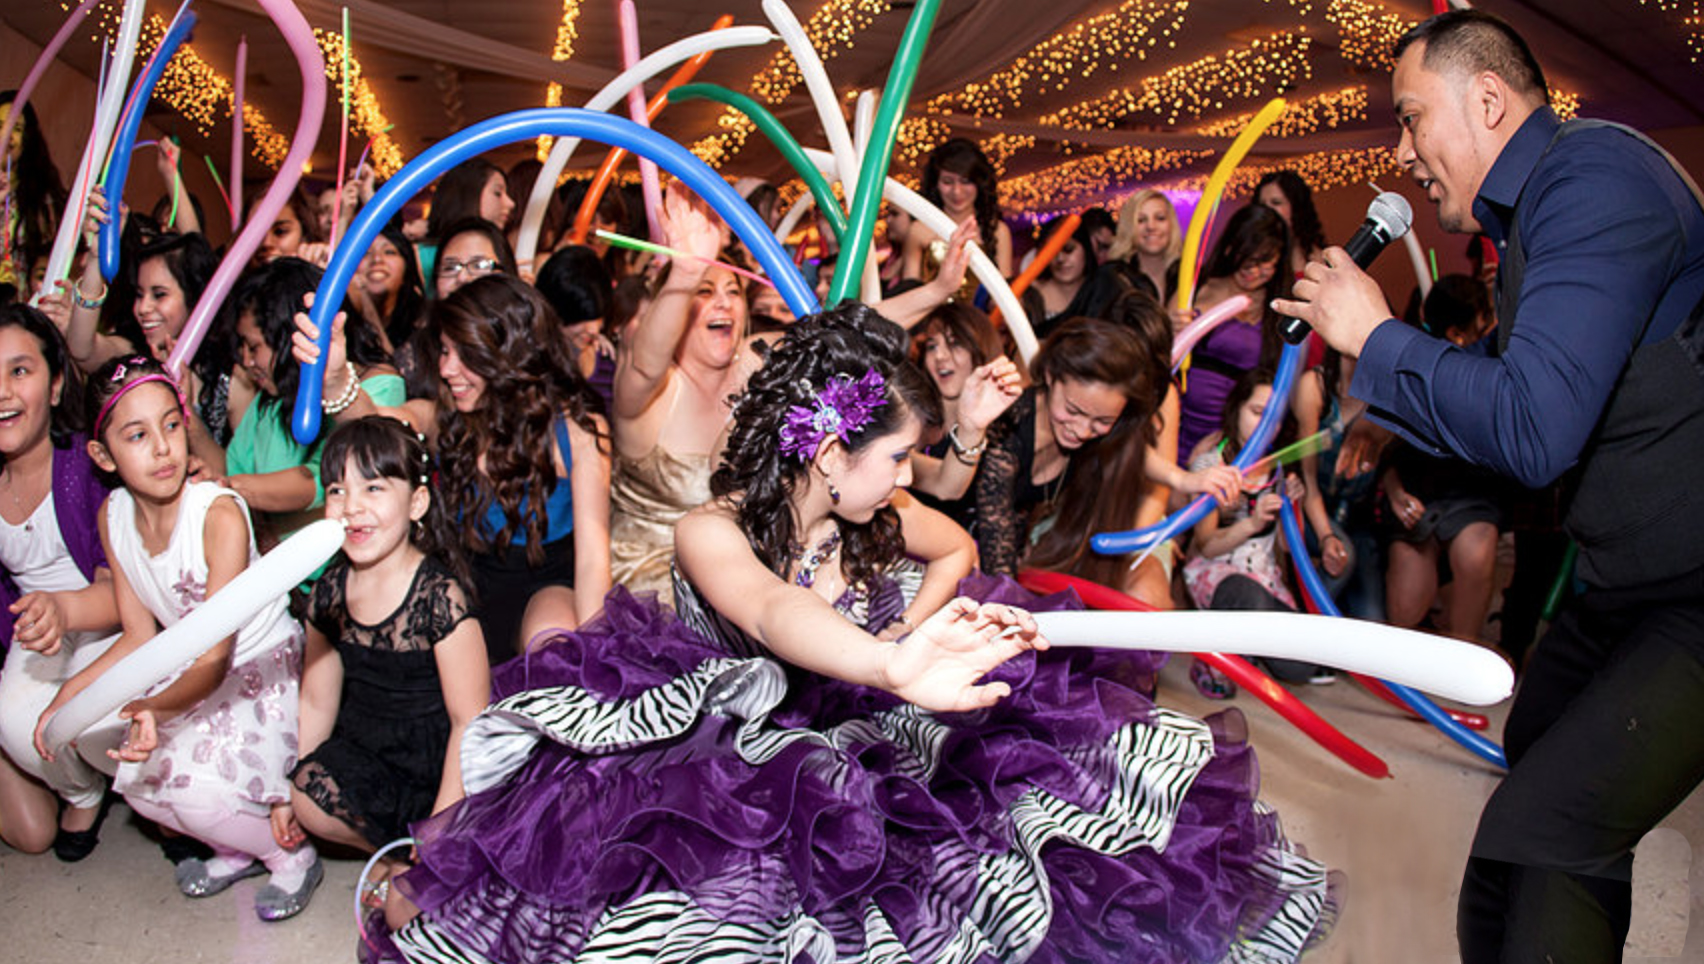 bilingual DJ's and MC's - Our experienced DJs will work with you to ensure our services far exceed your expectations and offers your guests an enjoyable event to remember.